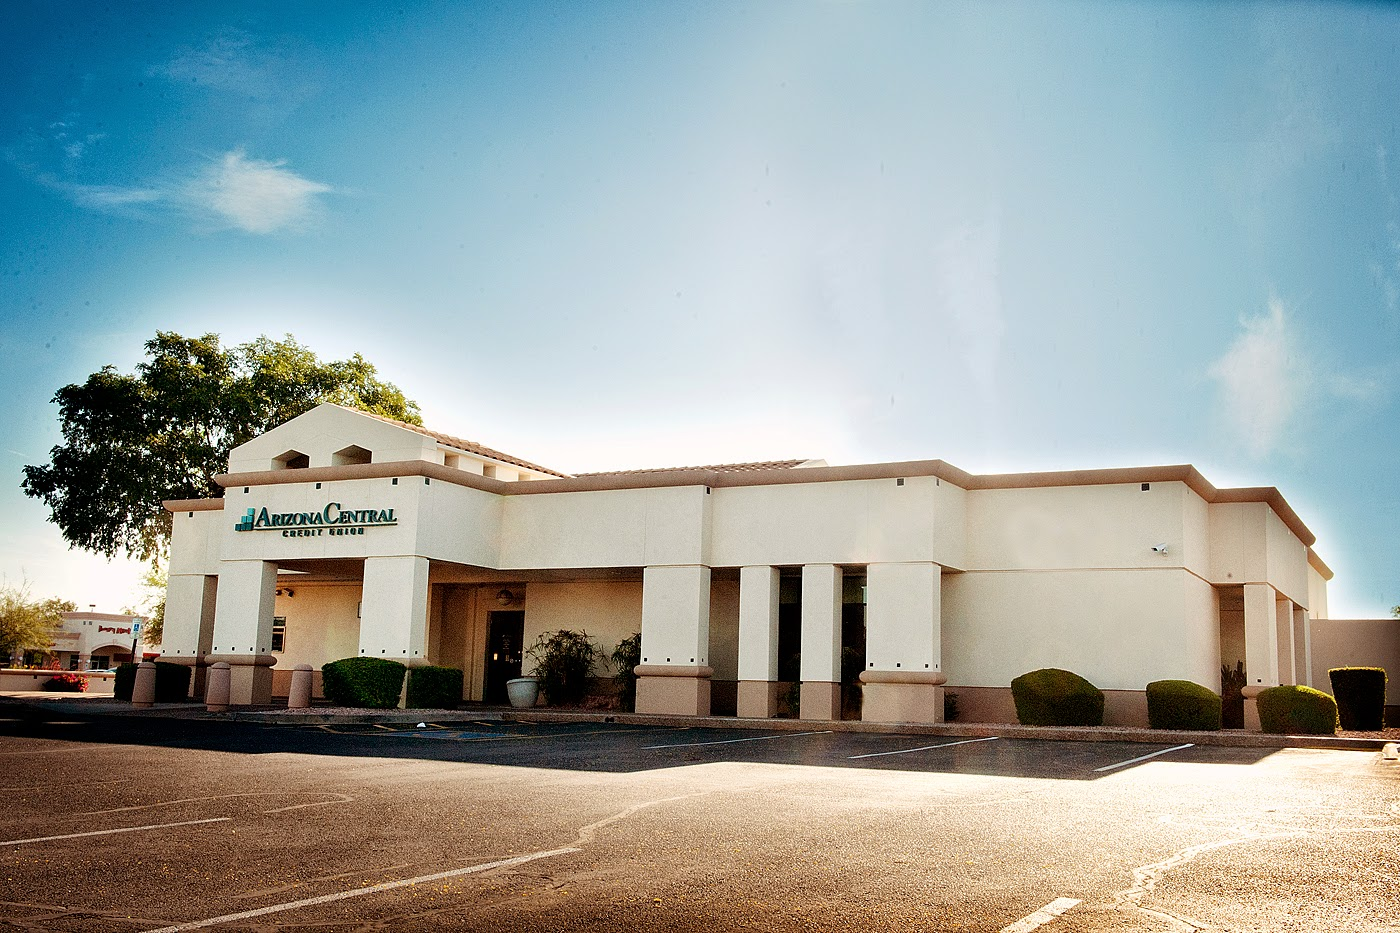 Arizona Central Credit Union